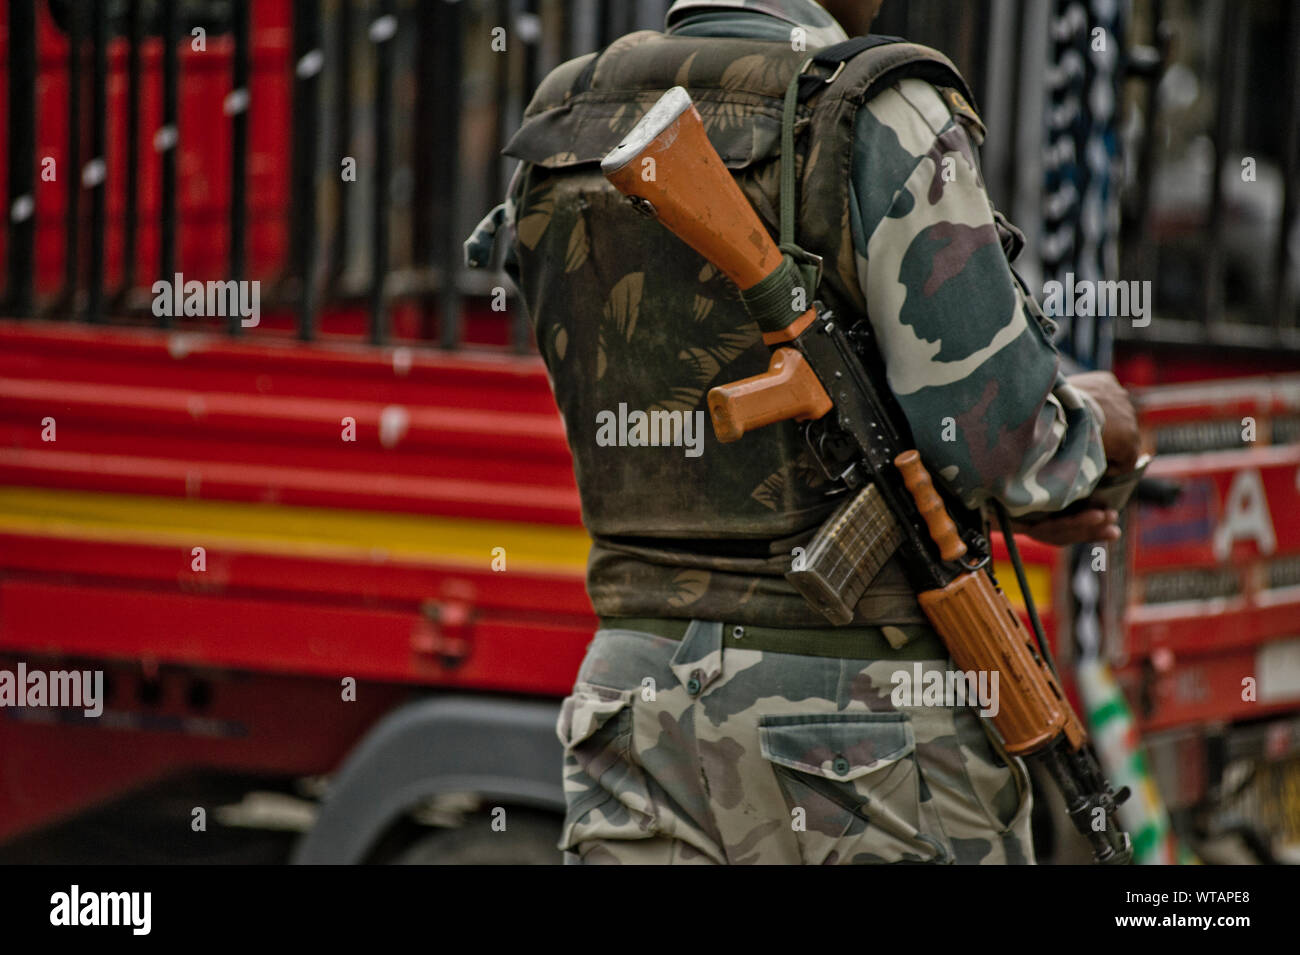 Indian Army Soldier Gun High Resolution Stock Photography And Images Alamy